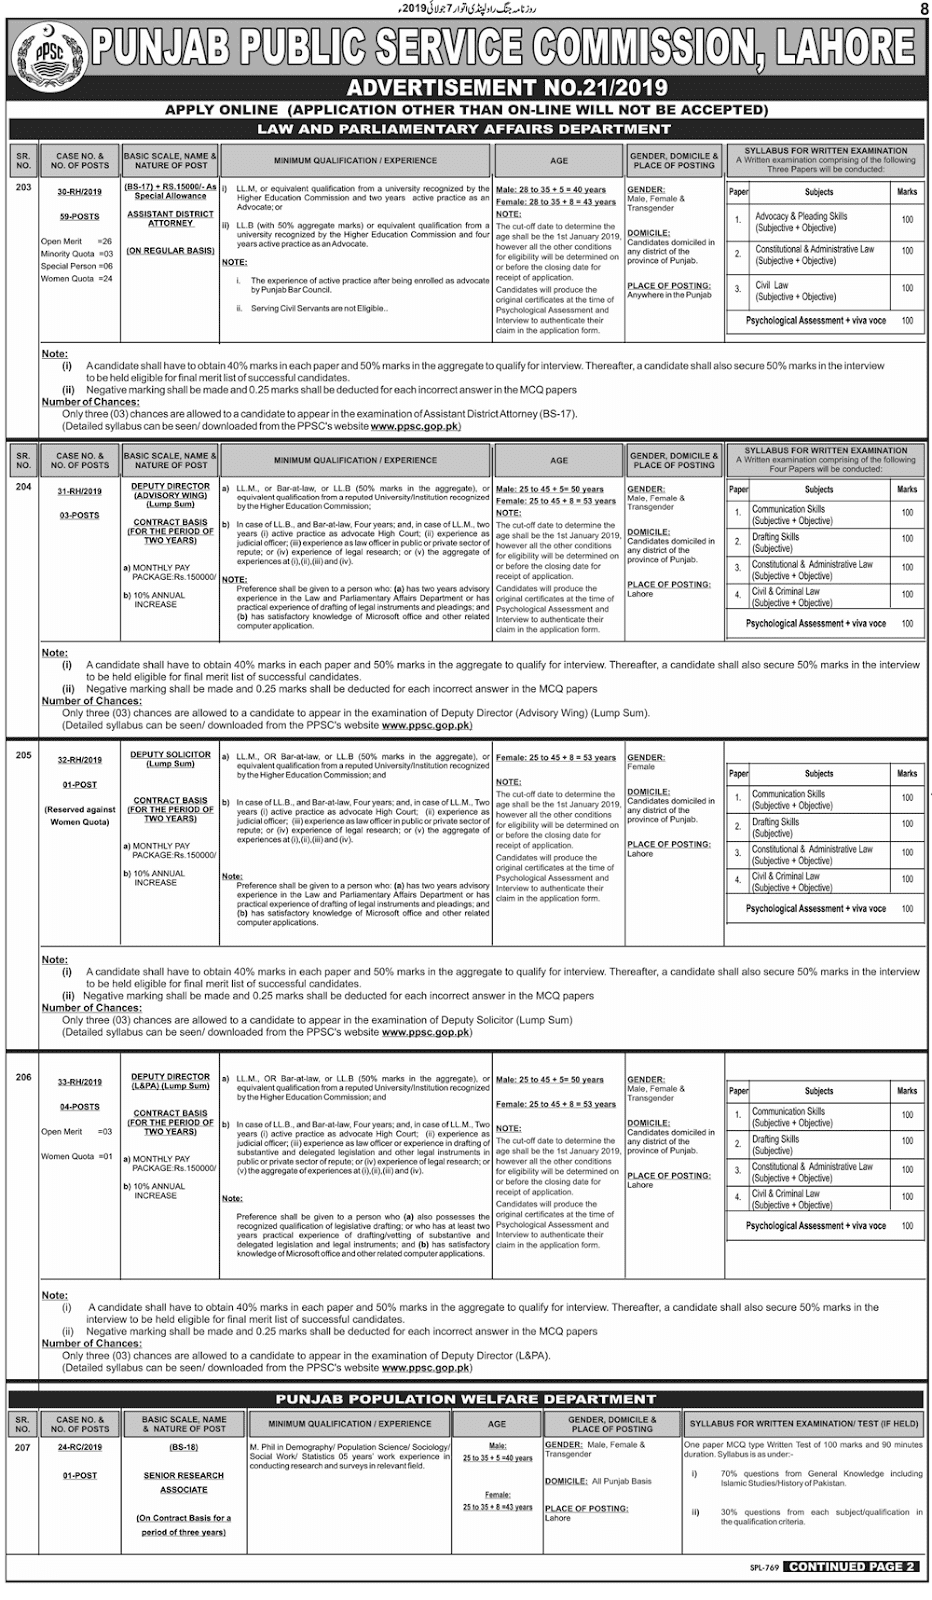 PPSC Advertisement 21/2019 Page No. 1/3